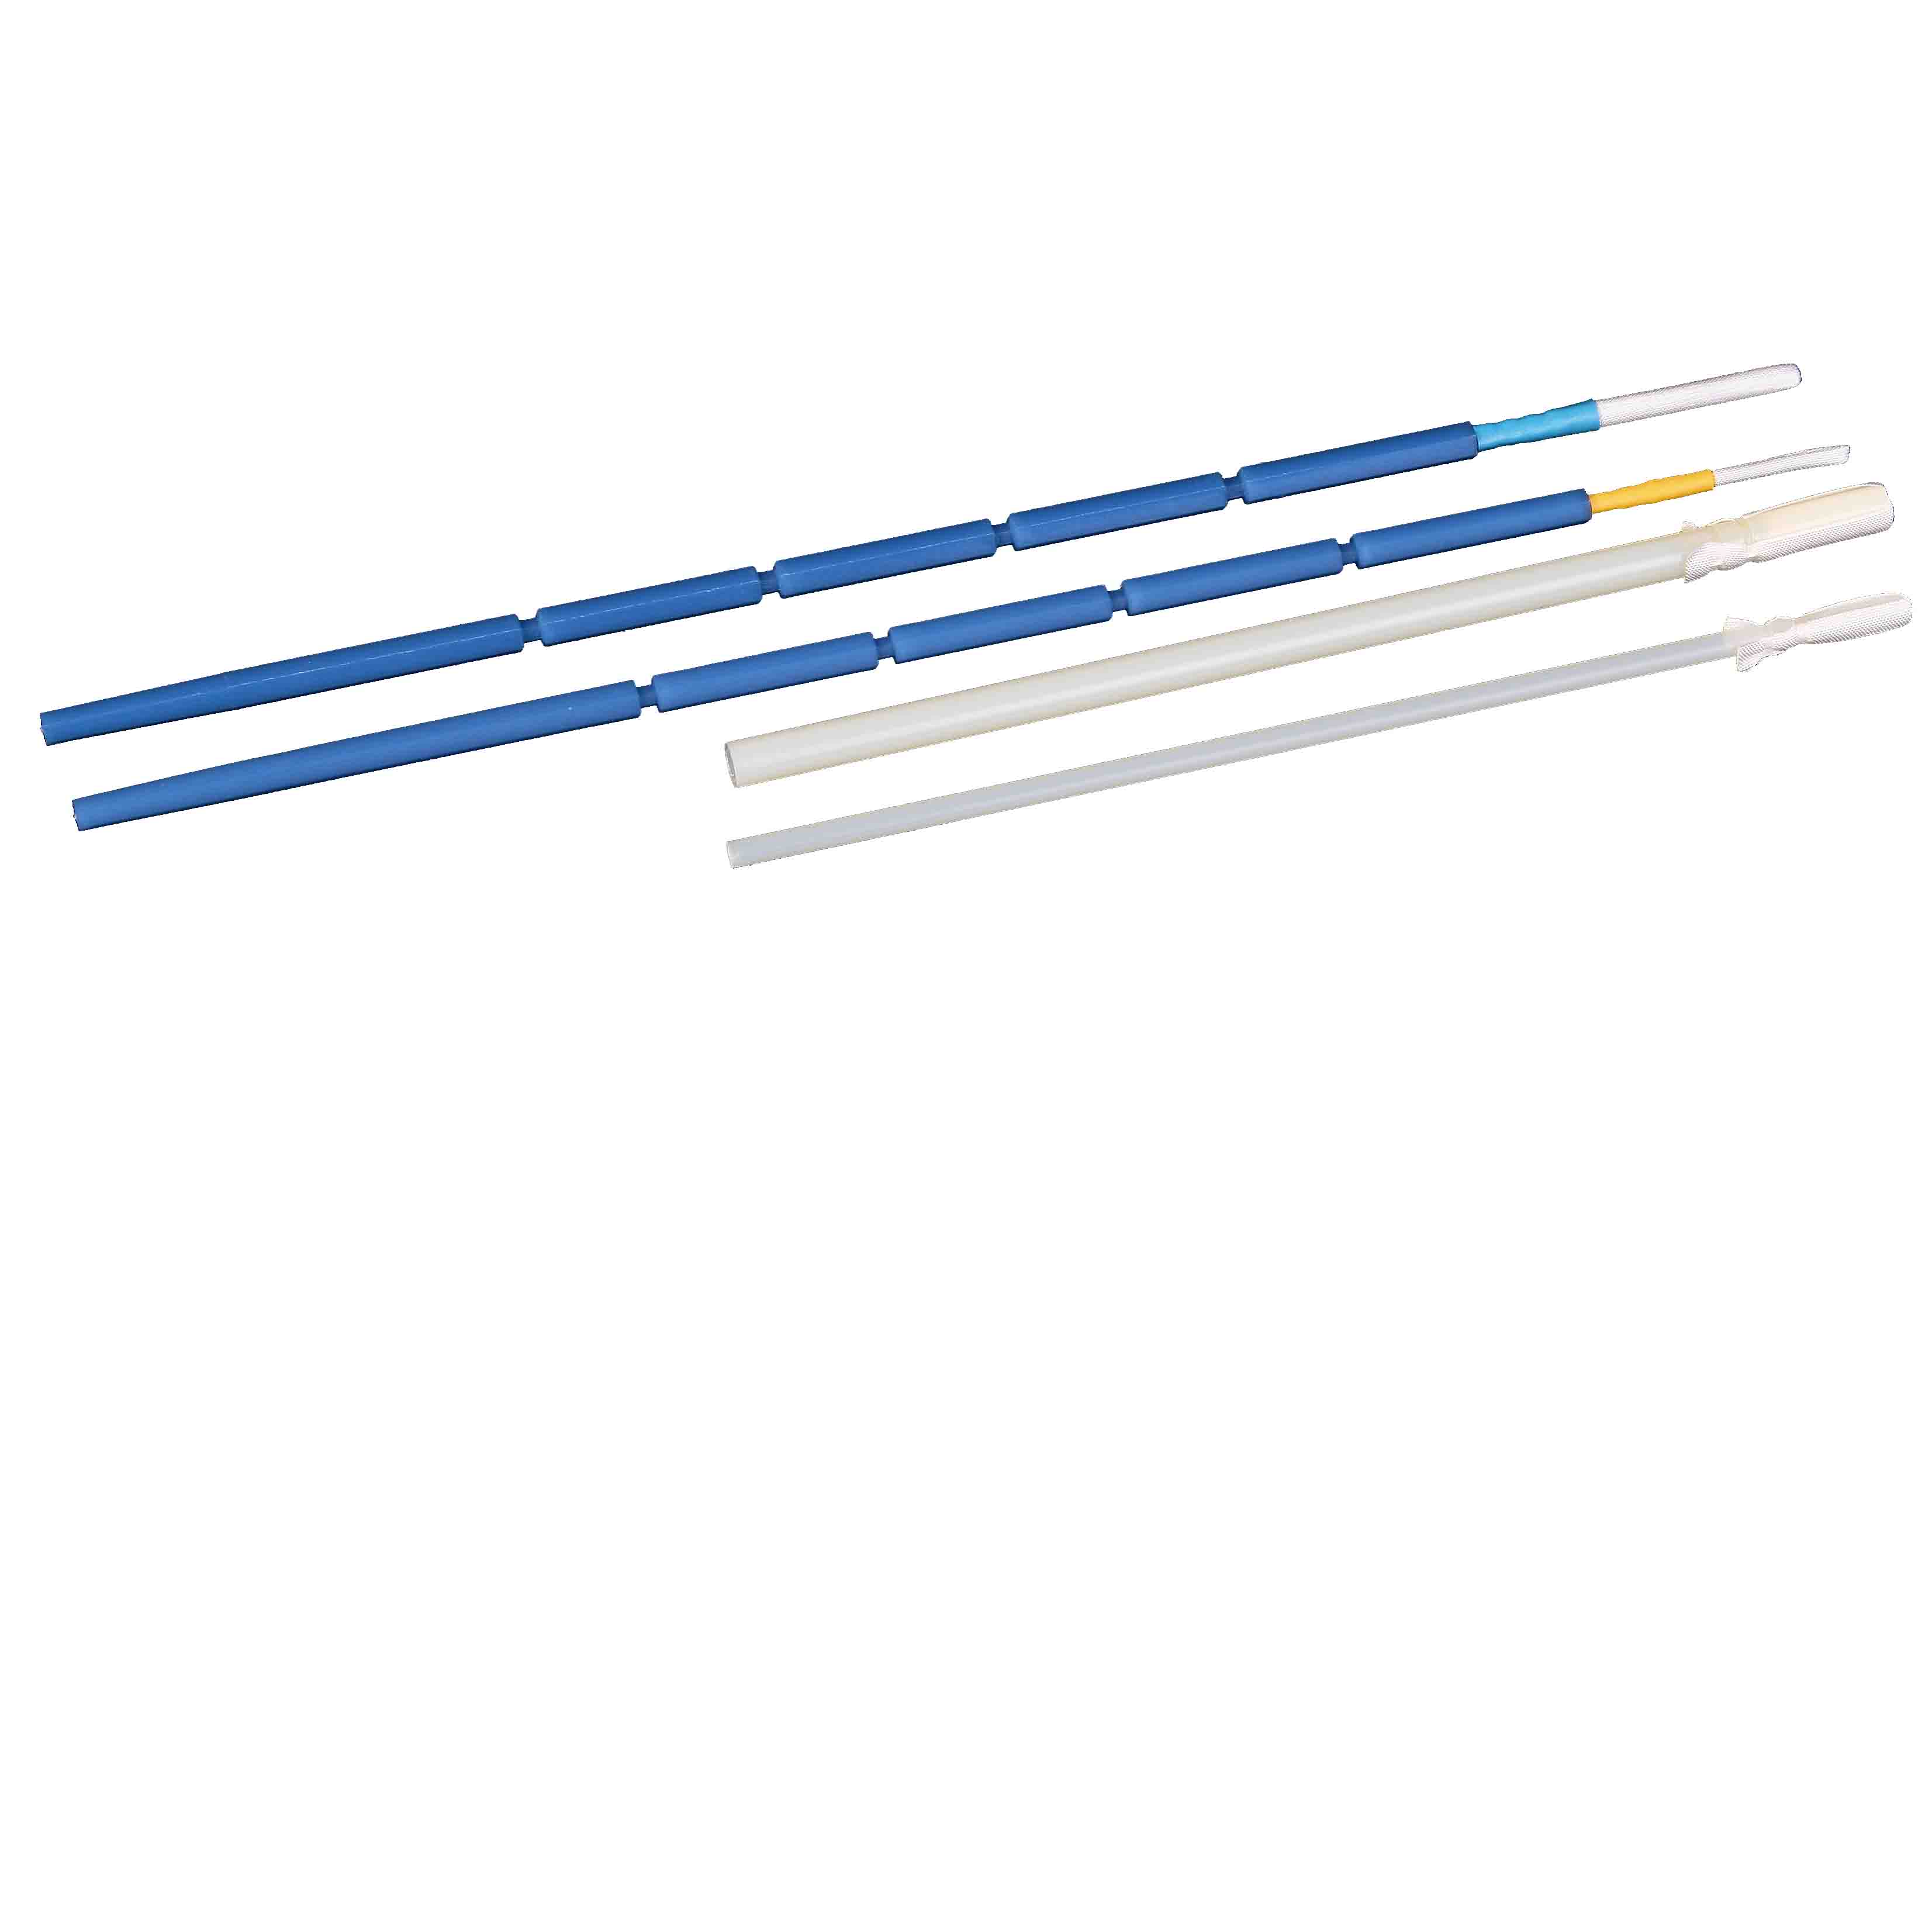 Pipe Cleaner_Stick Cleaner